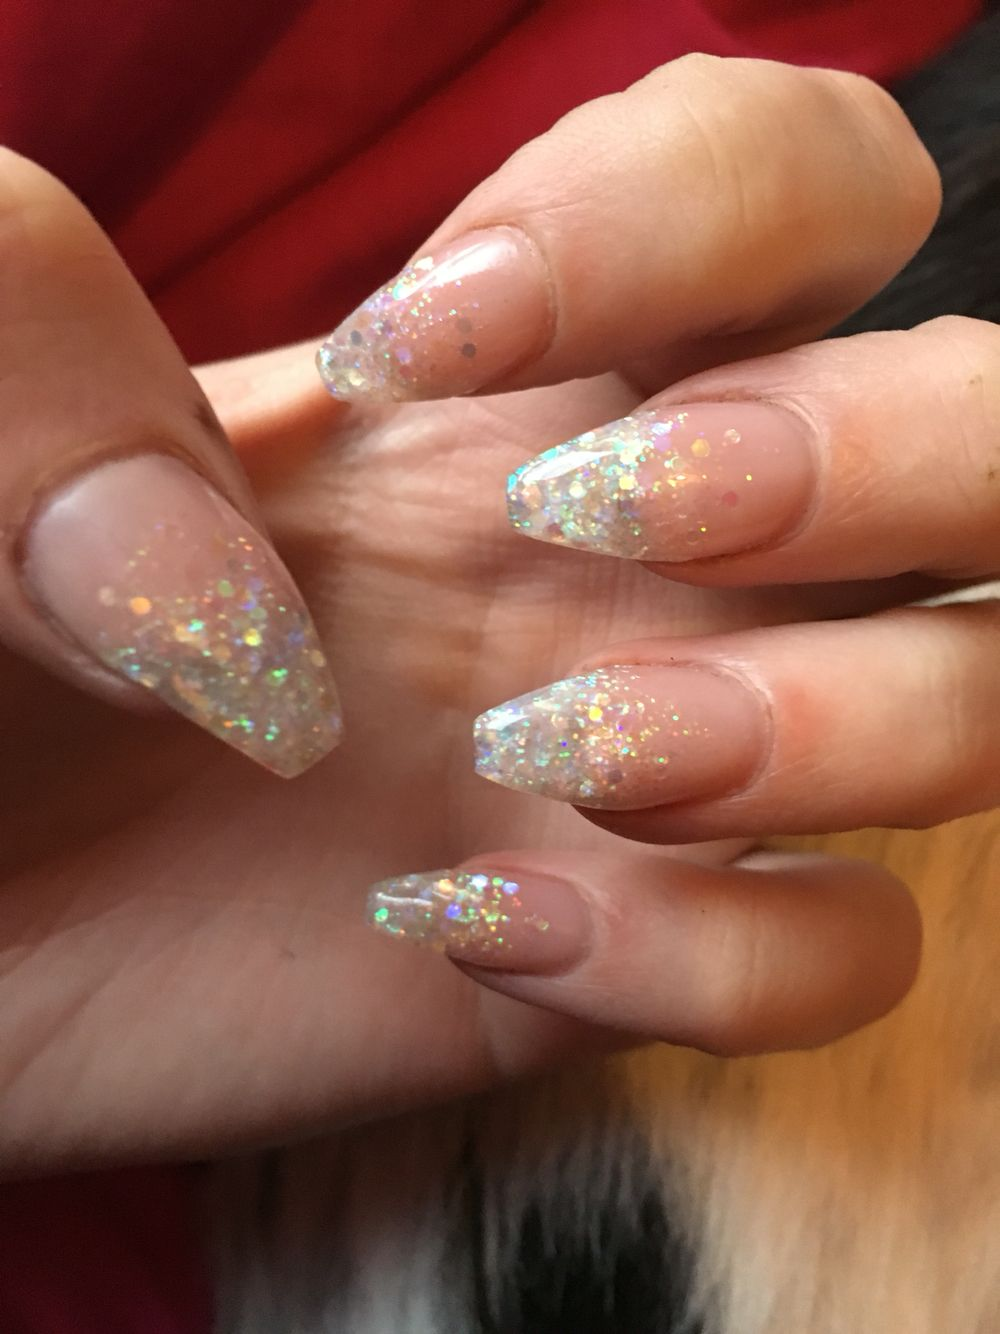 Nude nails with white glitter fade #glitterfade #coffinnails #nude ...